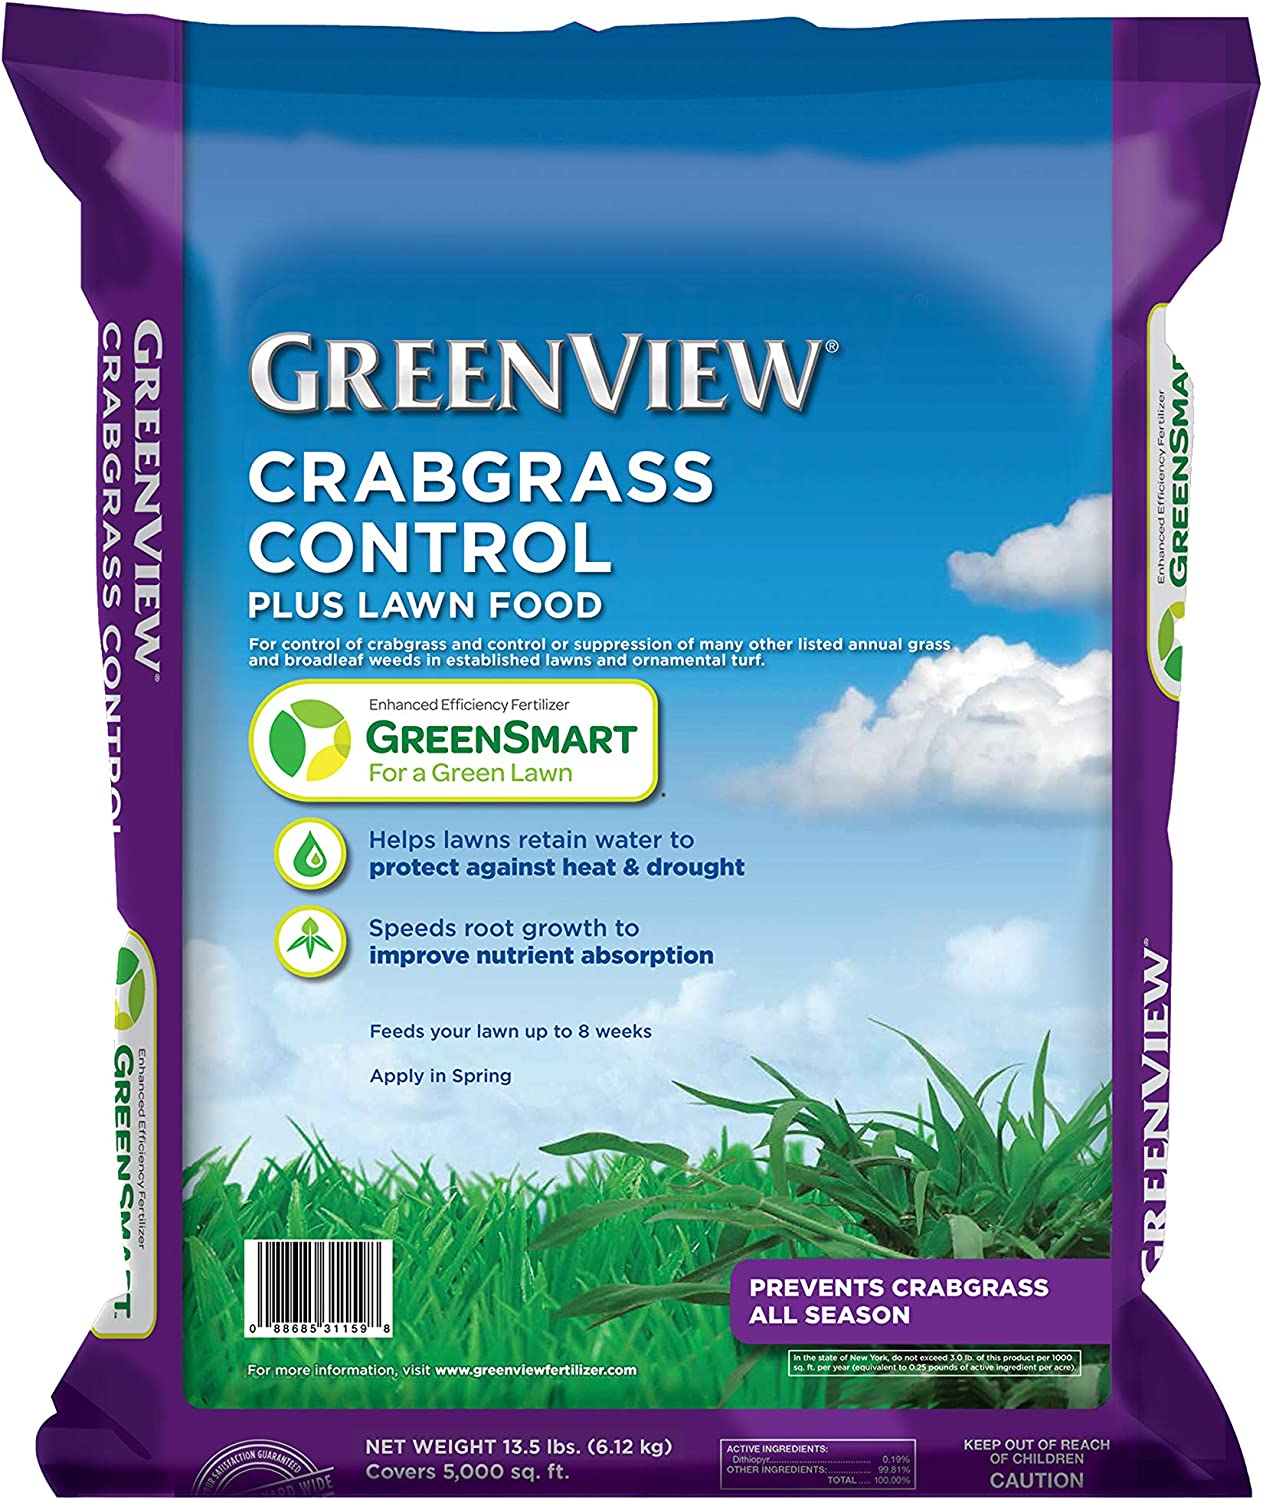 GreenView 2131251 Crabgrass Control + Lawn Food, 13.5 lb. -Covers 5,000 sq. ft